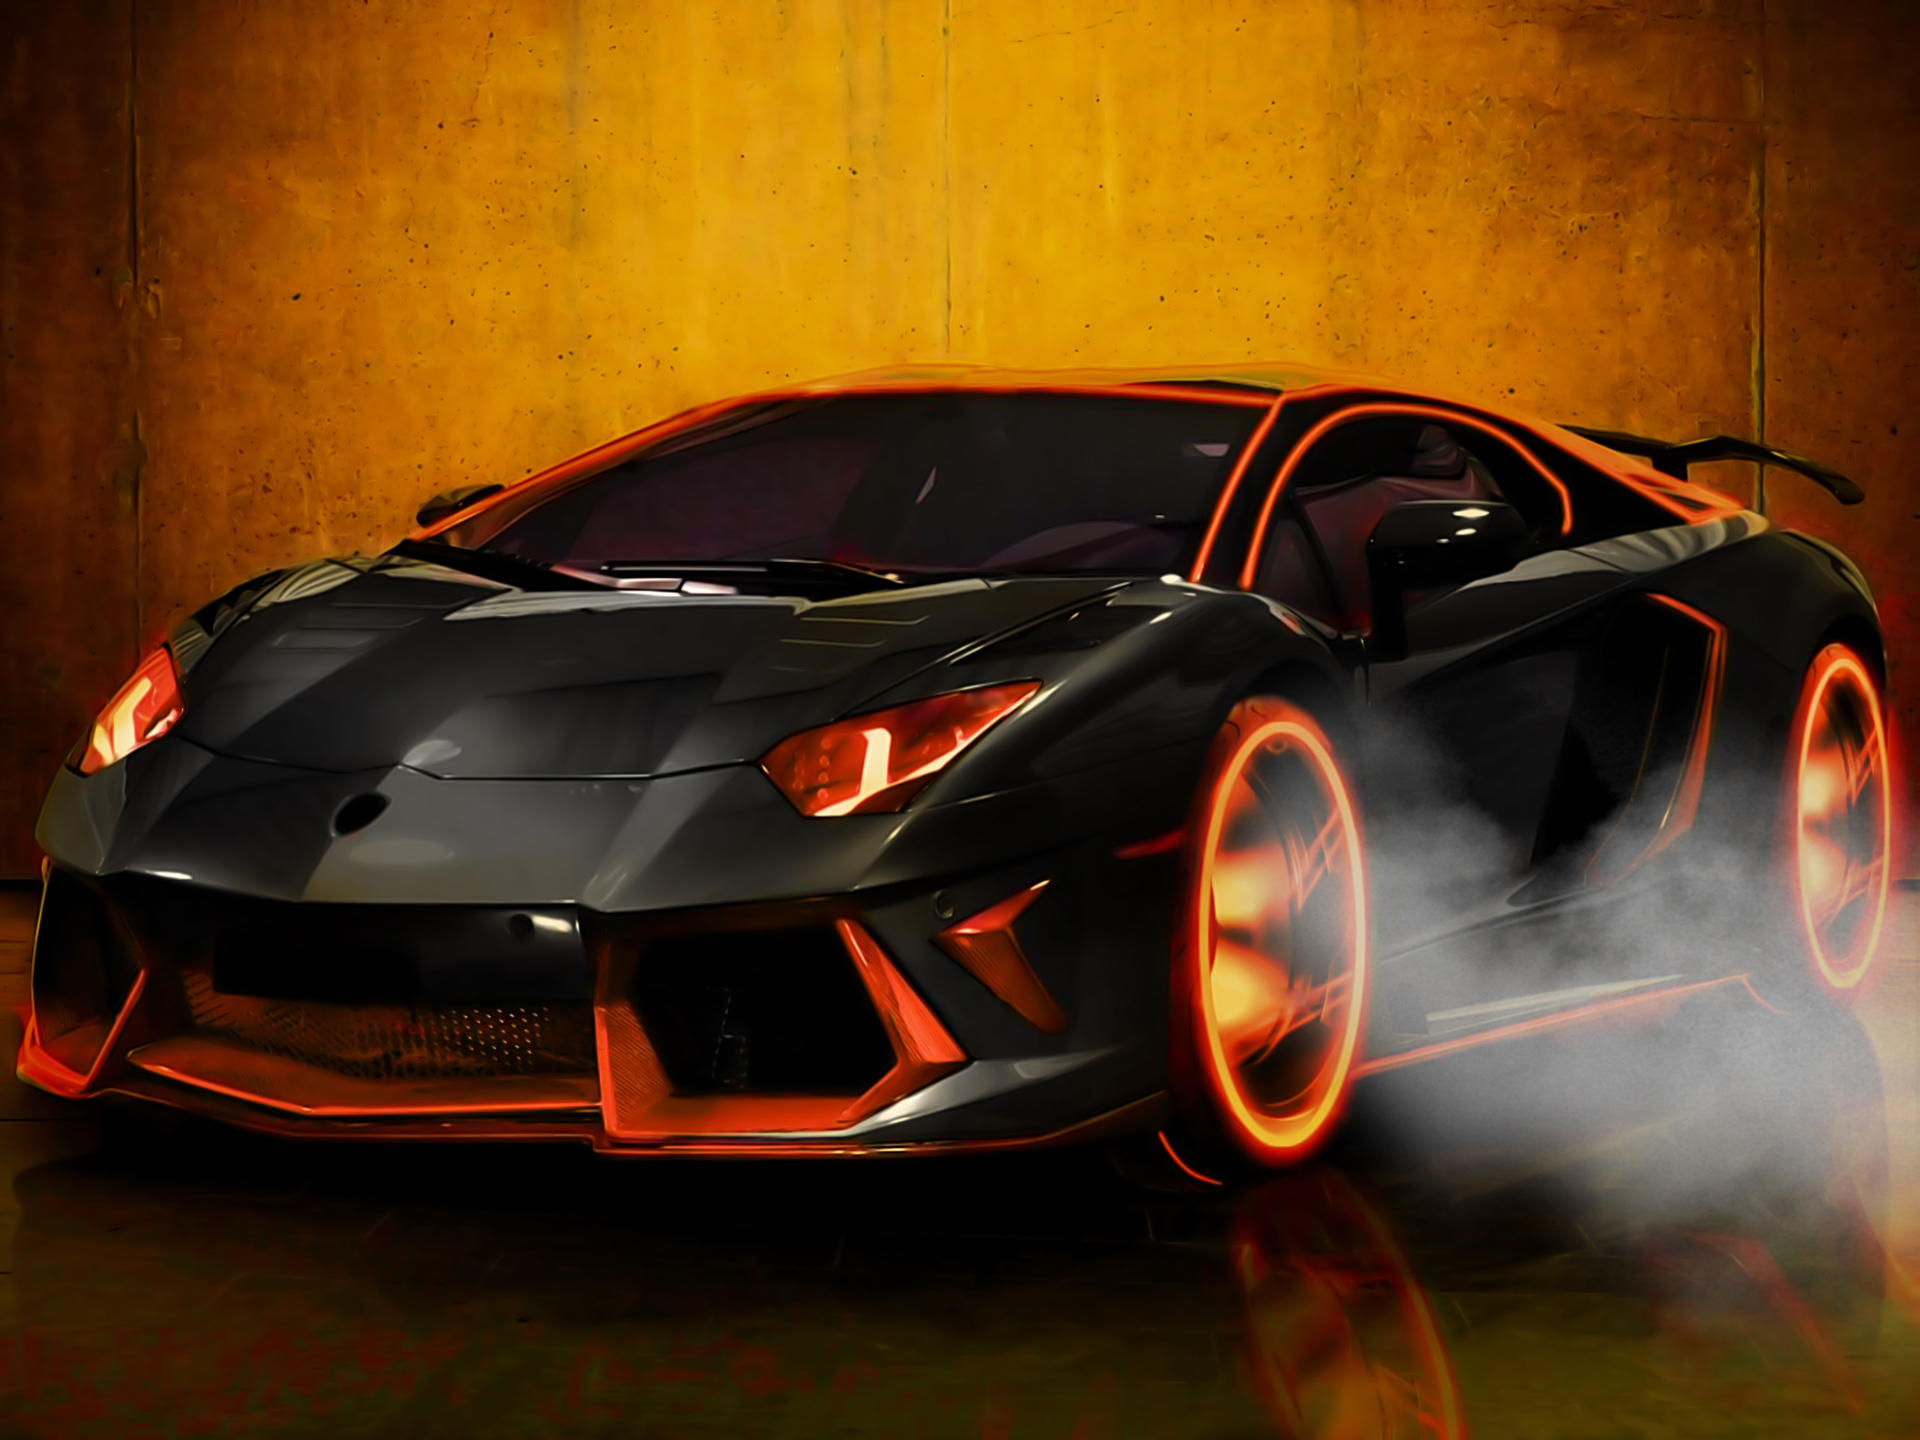 Hd Car Wallpapers For Mobile 28 Wallpapers: Index Of /free-hd-wallpapers/mobile-style1/download/